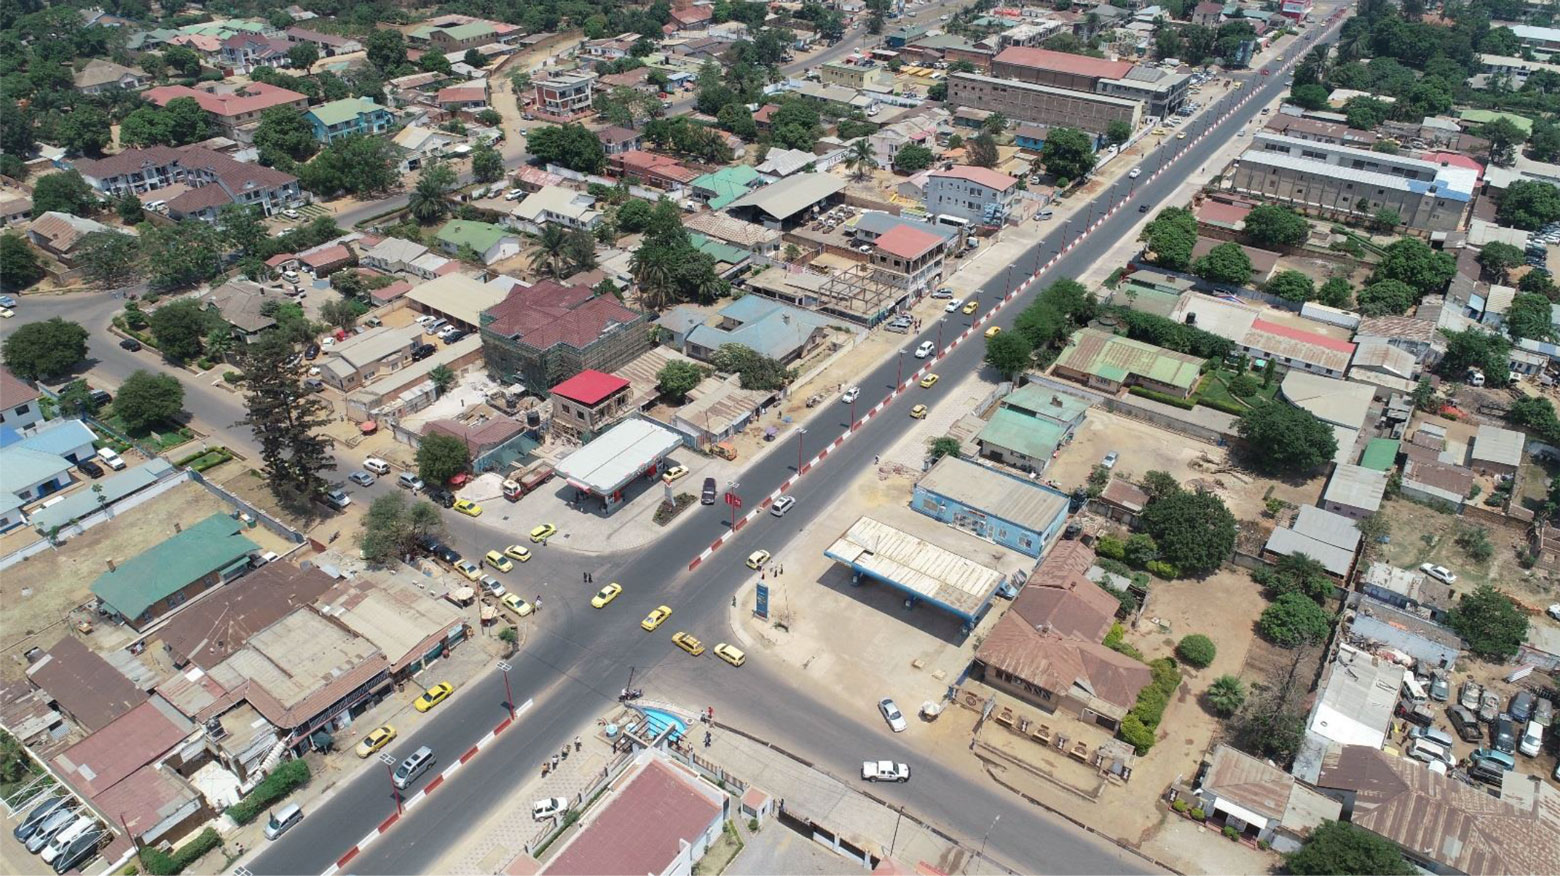 Aerial view of Kasavubu avenue in Lubumbashi, DRC.